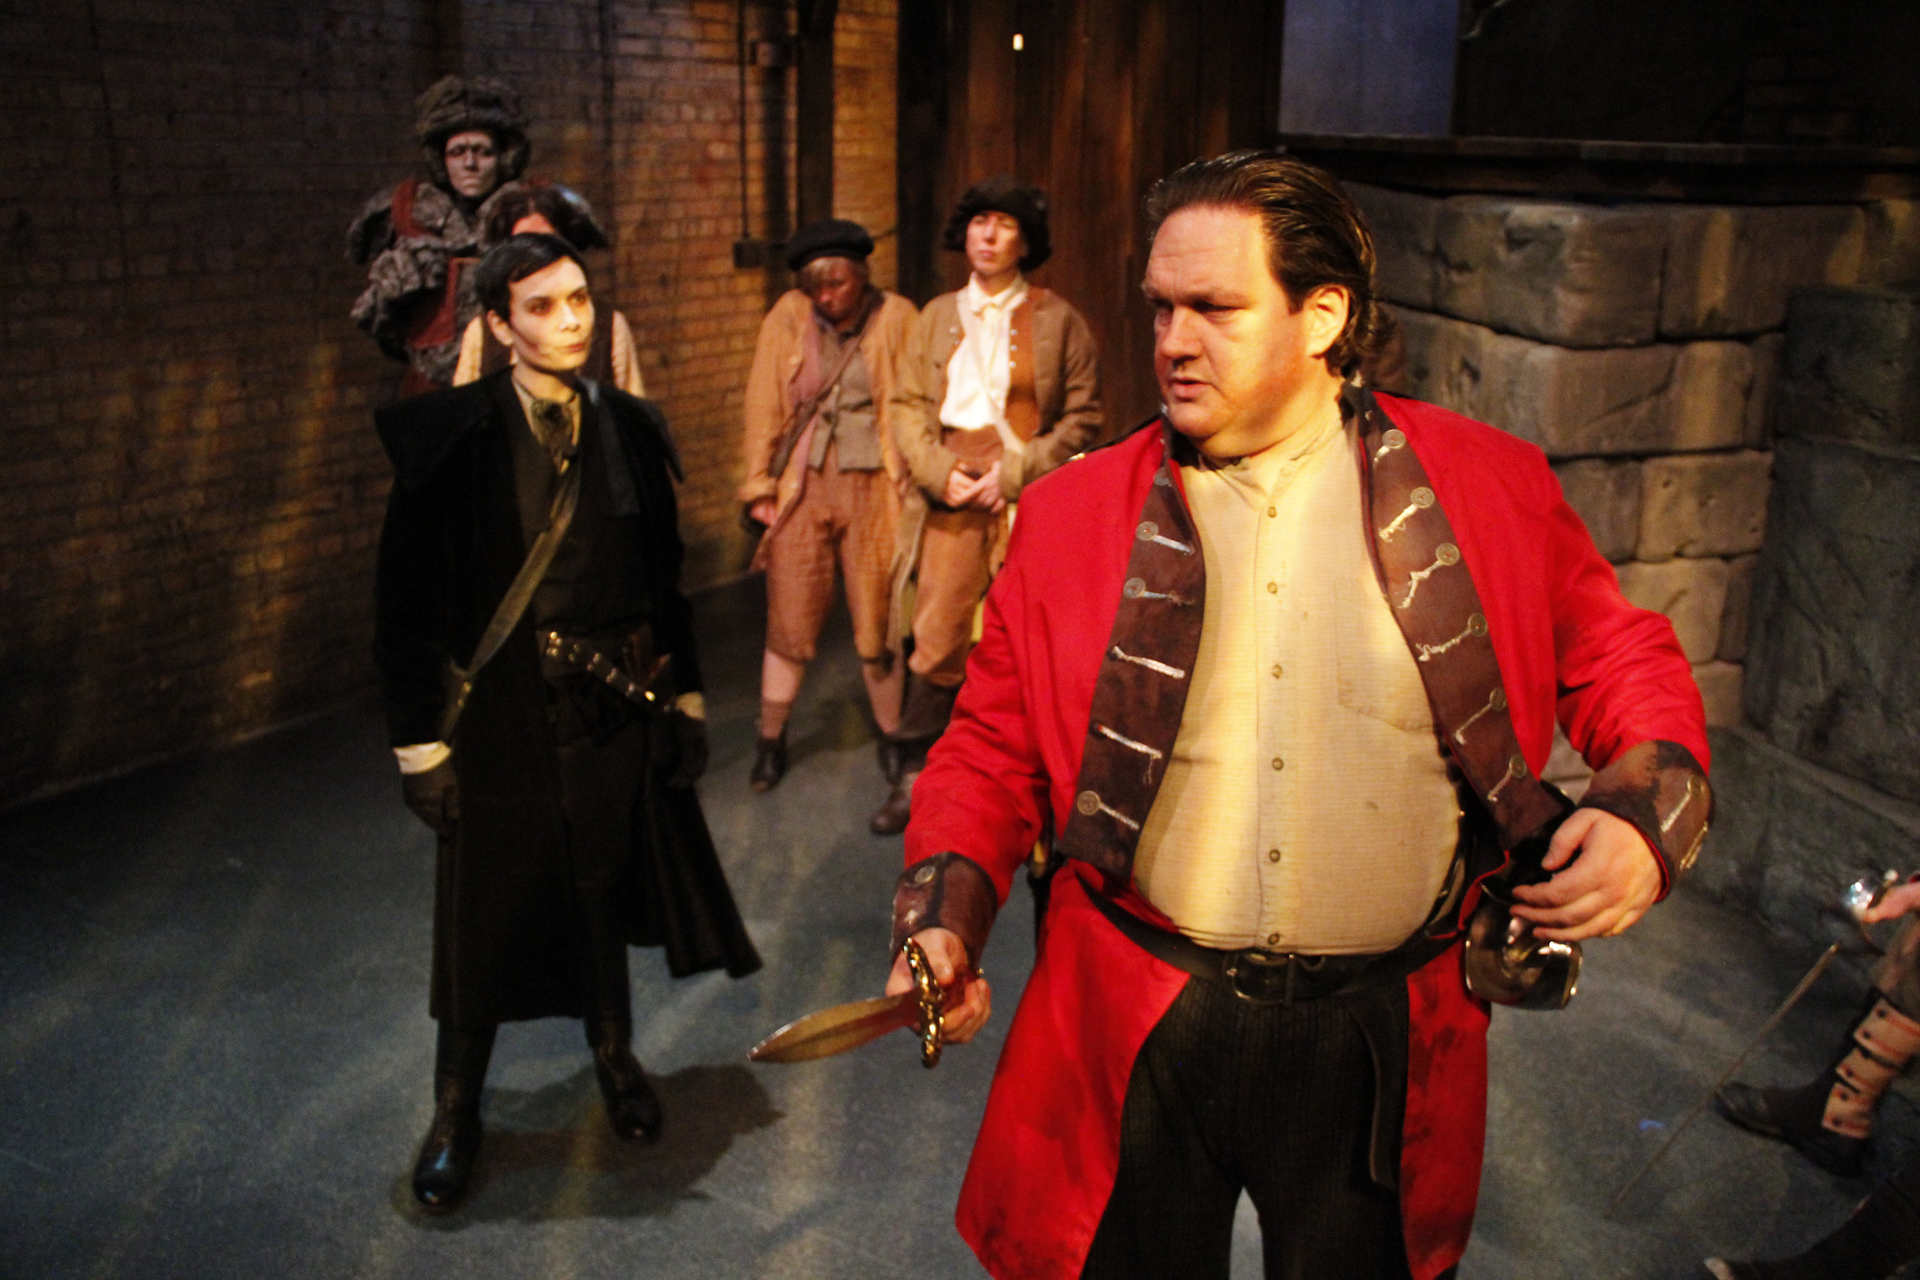 MONSTROUS REGIMENT (Lifeline Theatre 2014 - photo by Kelsey Jorissen)